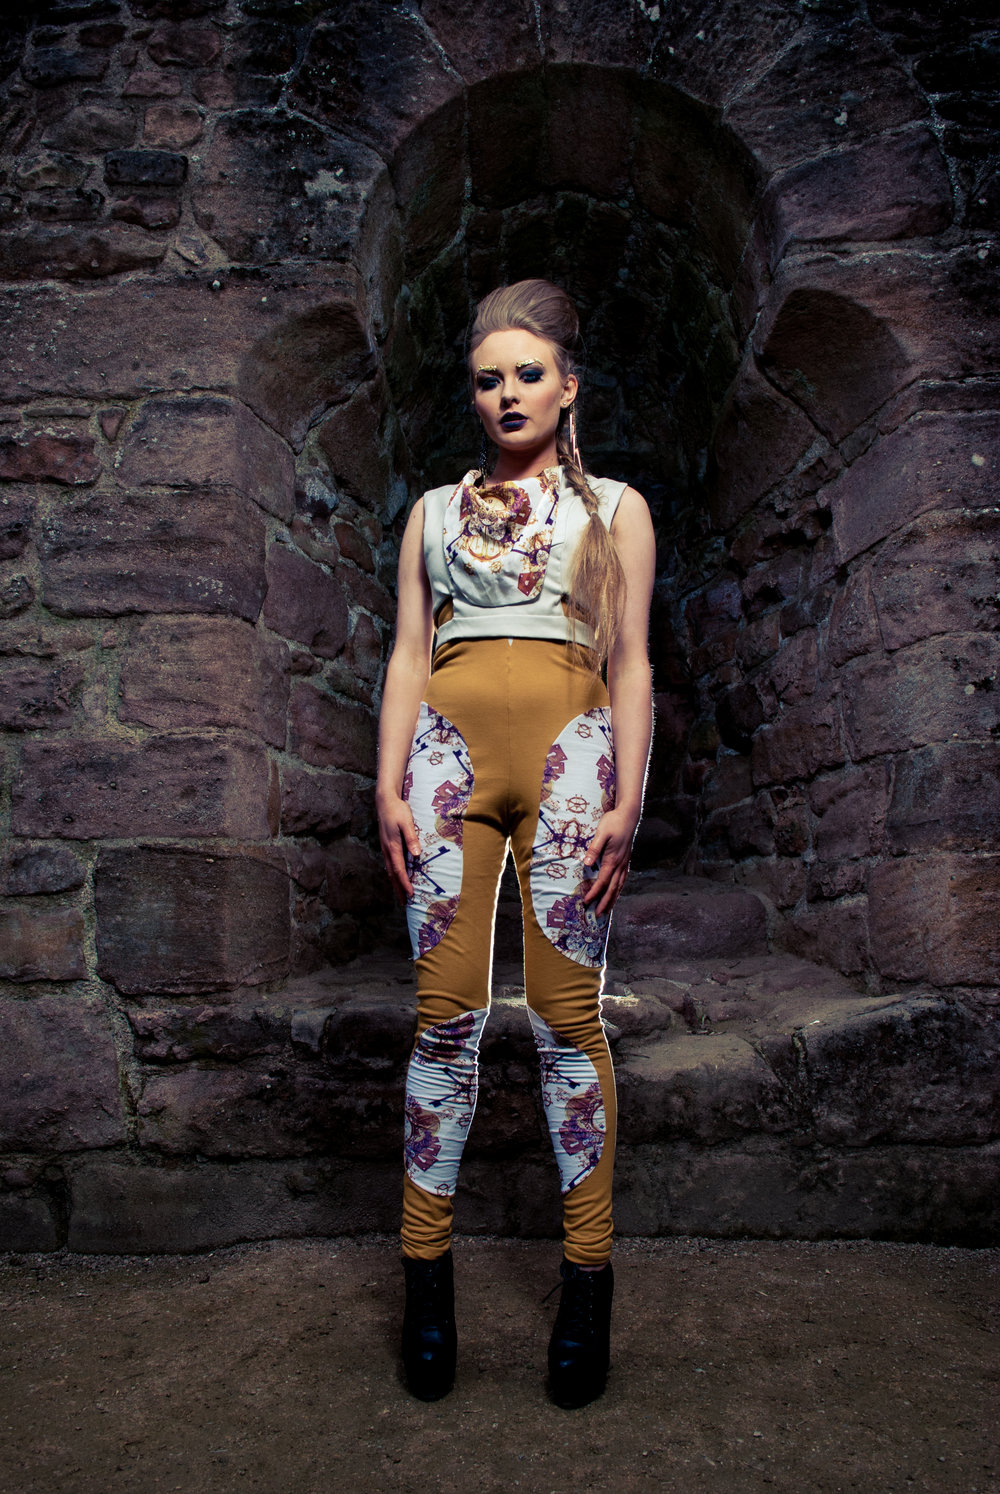 zaramia-ava-zaramiaava-leeds-fashion-designer-ethical-sustainable-tailored-minimalist-versatile-drape-wrap-top-cowl-bodysuit-skirt-jacket-jumpsuit-panels-print-coat-armwarmers-jack-belt-styling-womenswear-model-photoshoot-location-zara-mia-14.jpg